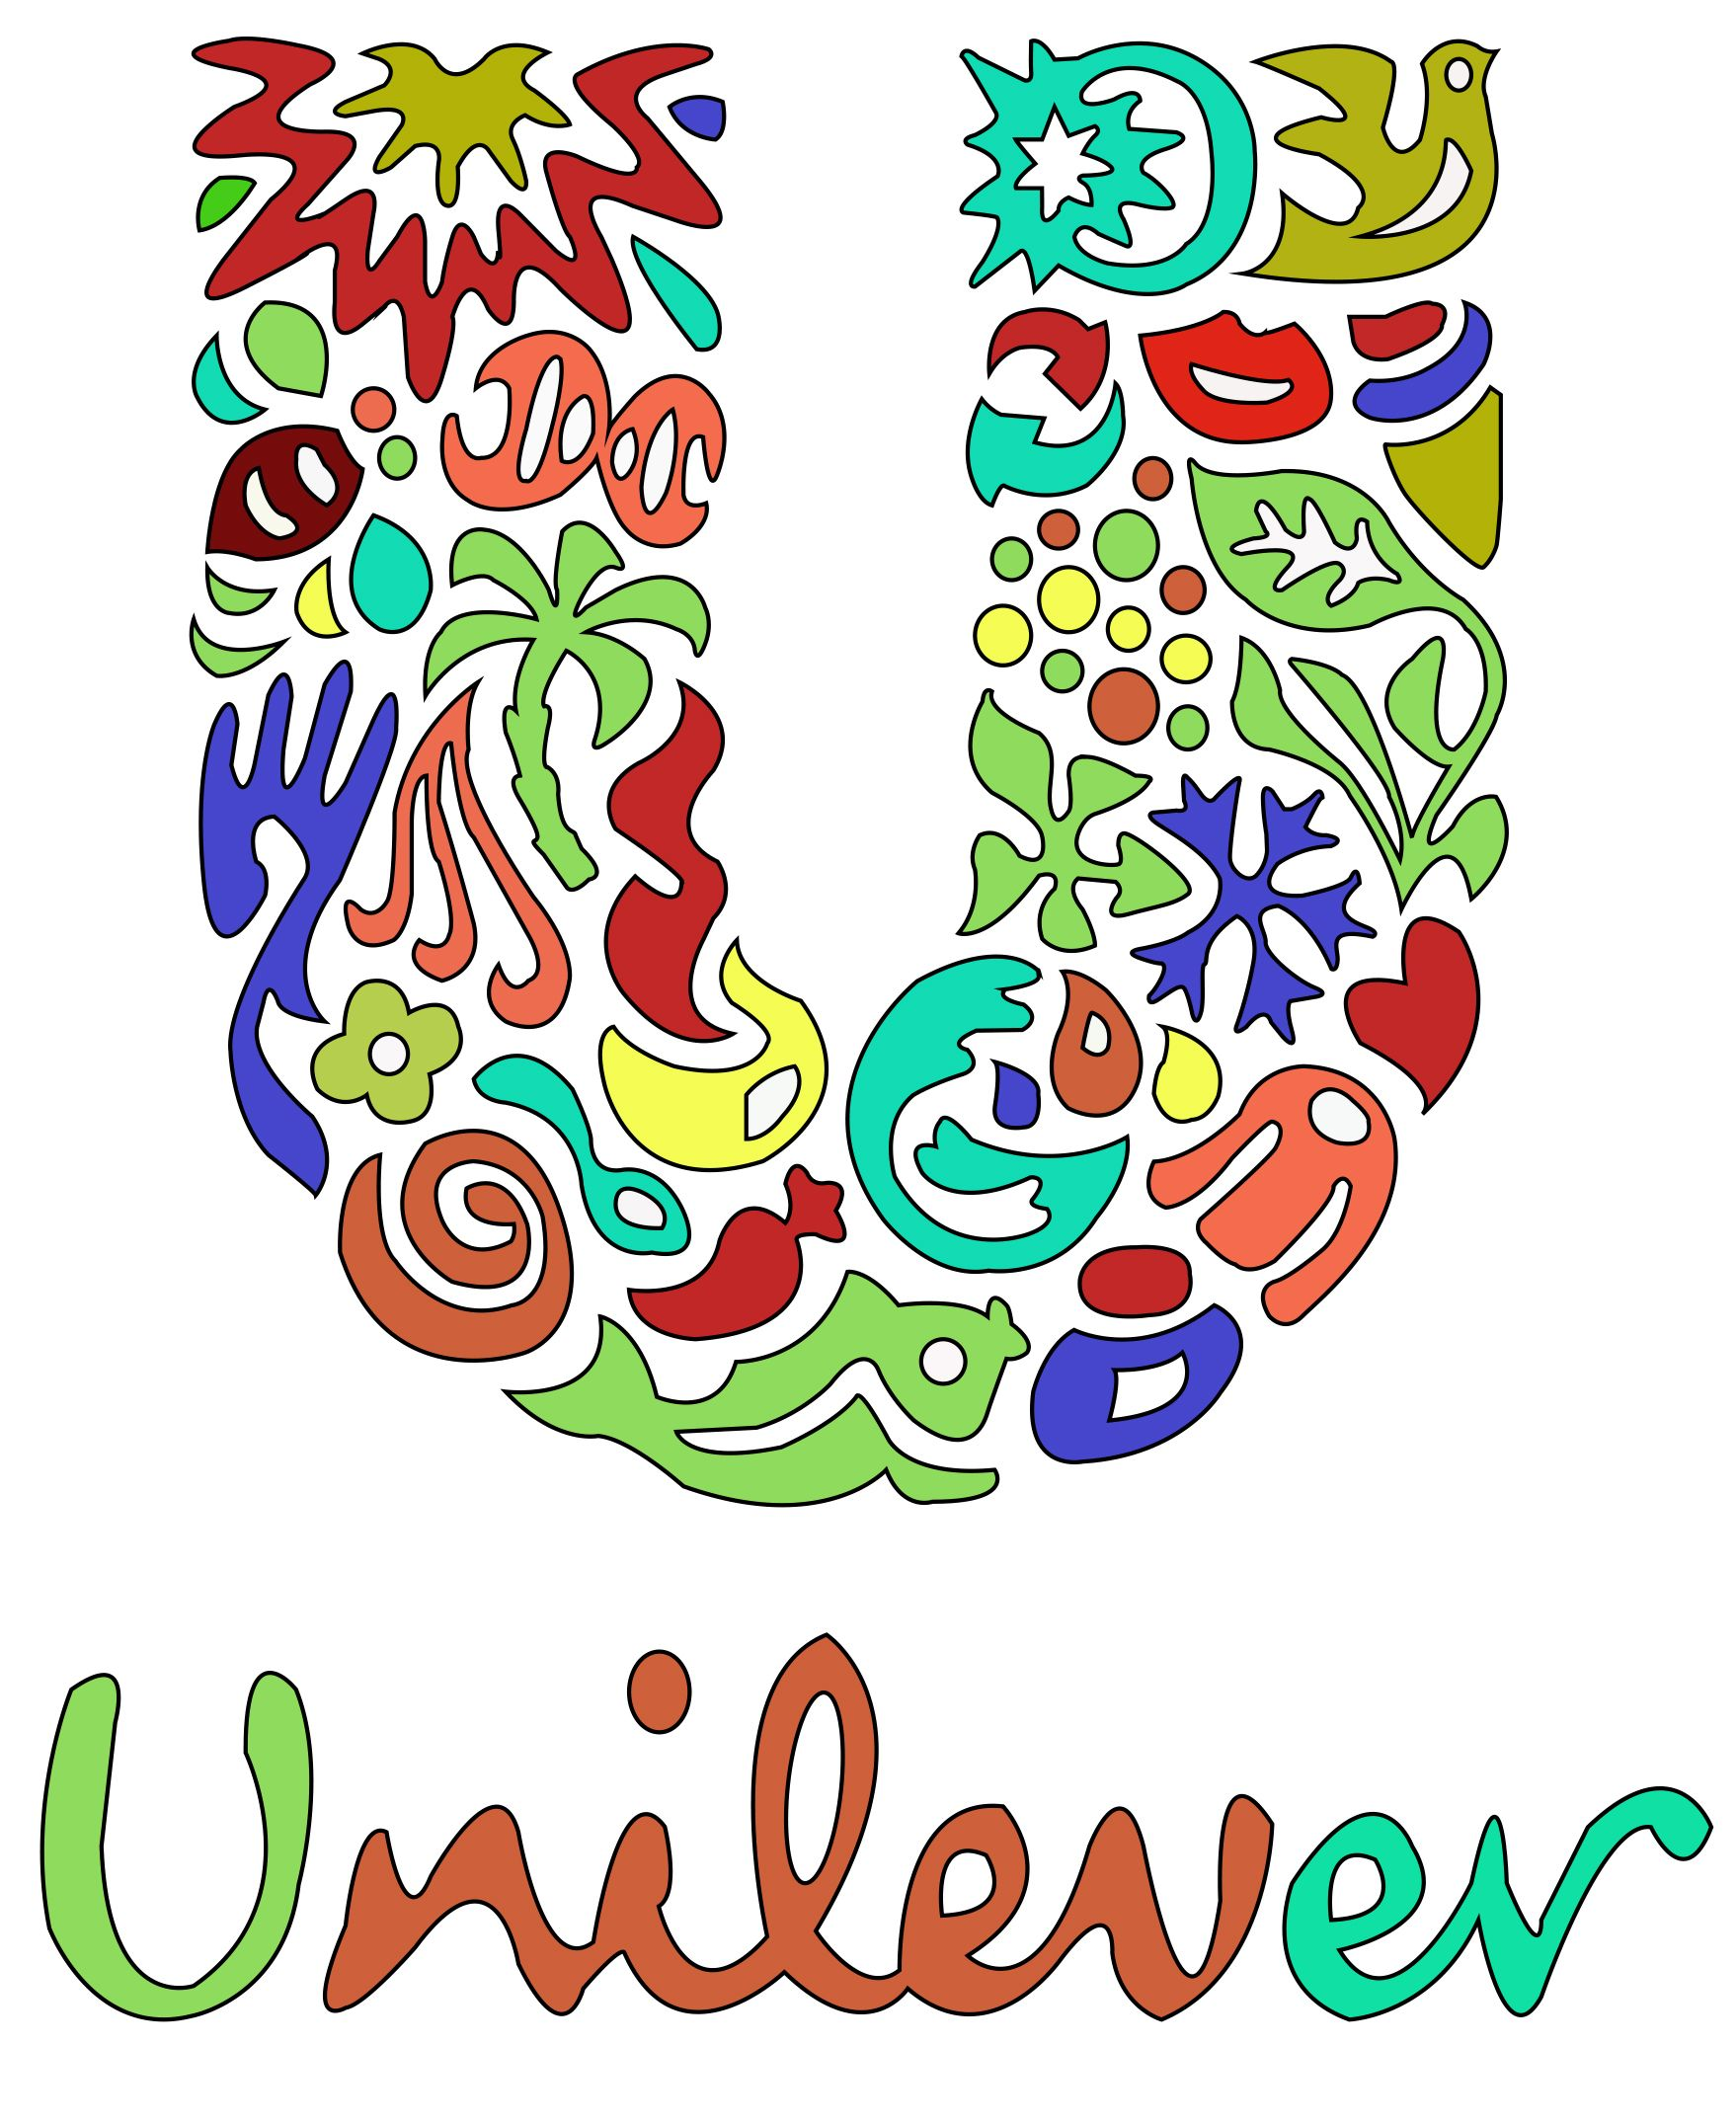 Made a unilever logo in illustrator portofolio pinterest made a unilever logo in illustrator biocorpaavc Images